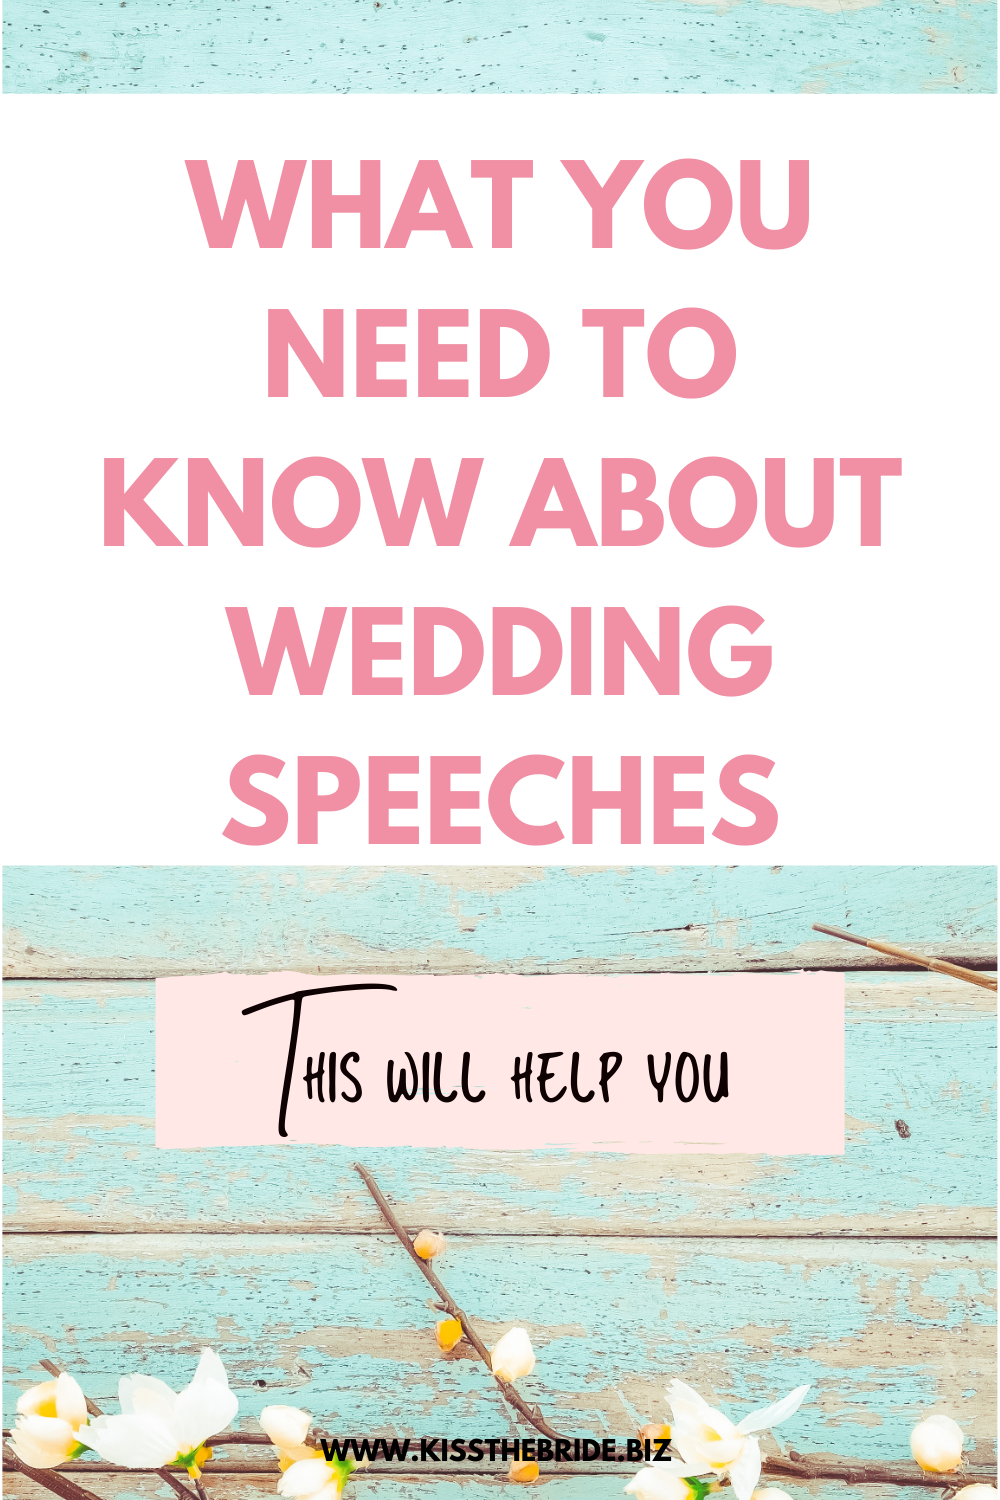 Wedding speech advice